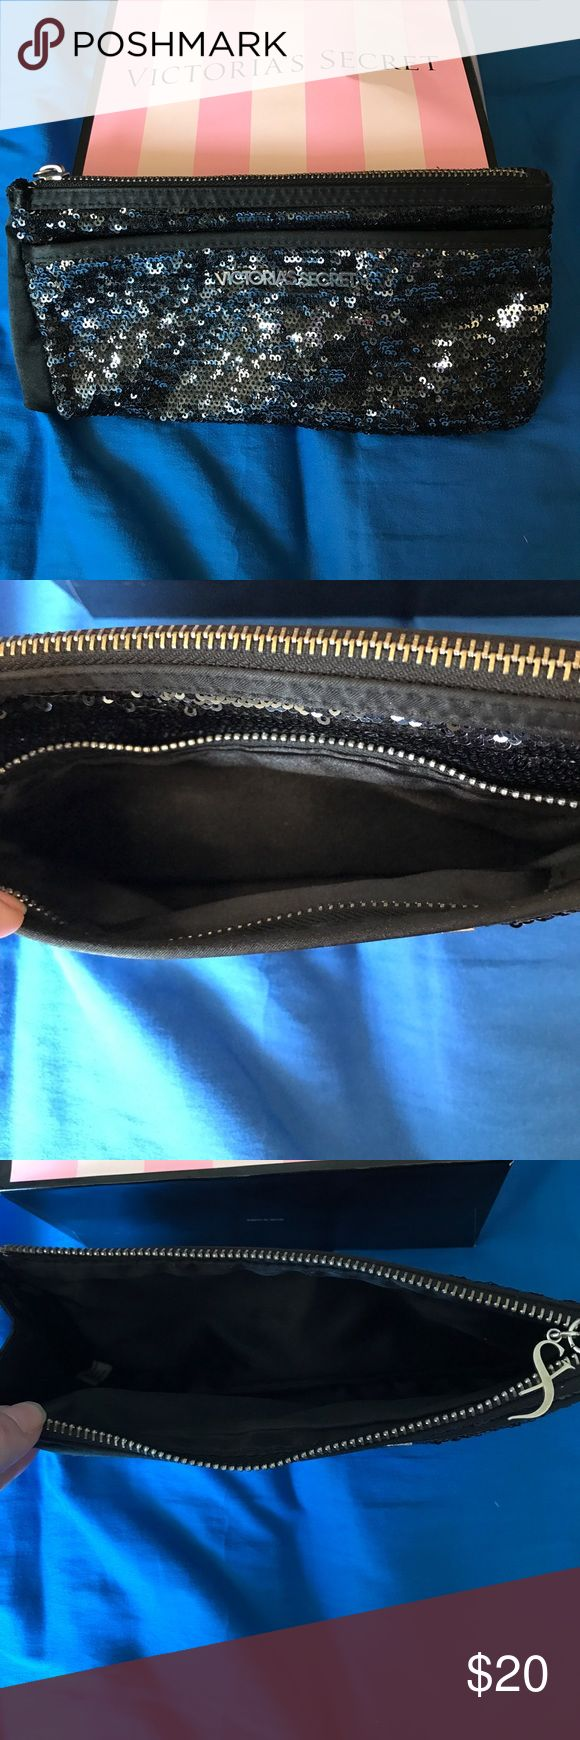 Victoria's Secret Sequined clutch EUC Victoria's Secret black sequined clutch. Super cute and a great way to snazz up any outfit!! Victoria's Secret Bags Clutches & Wristlets